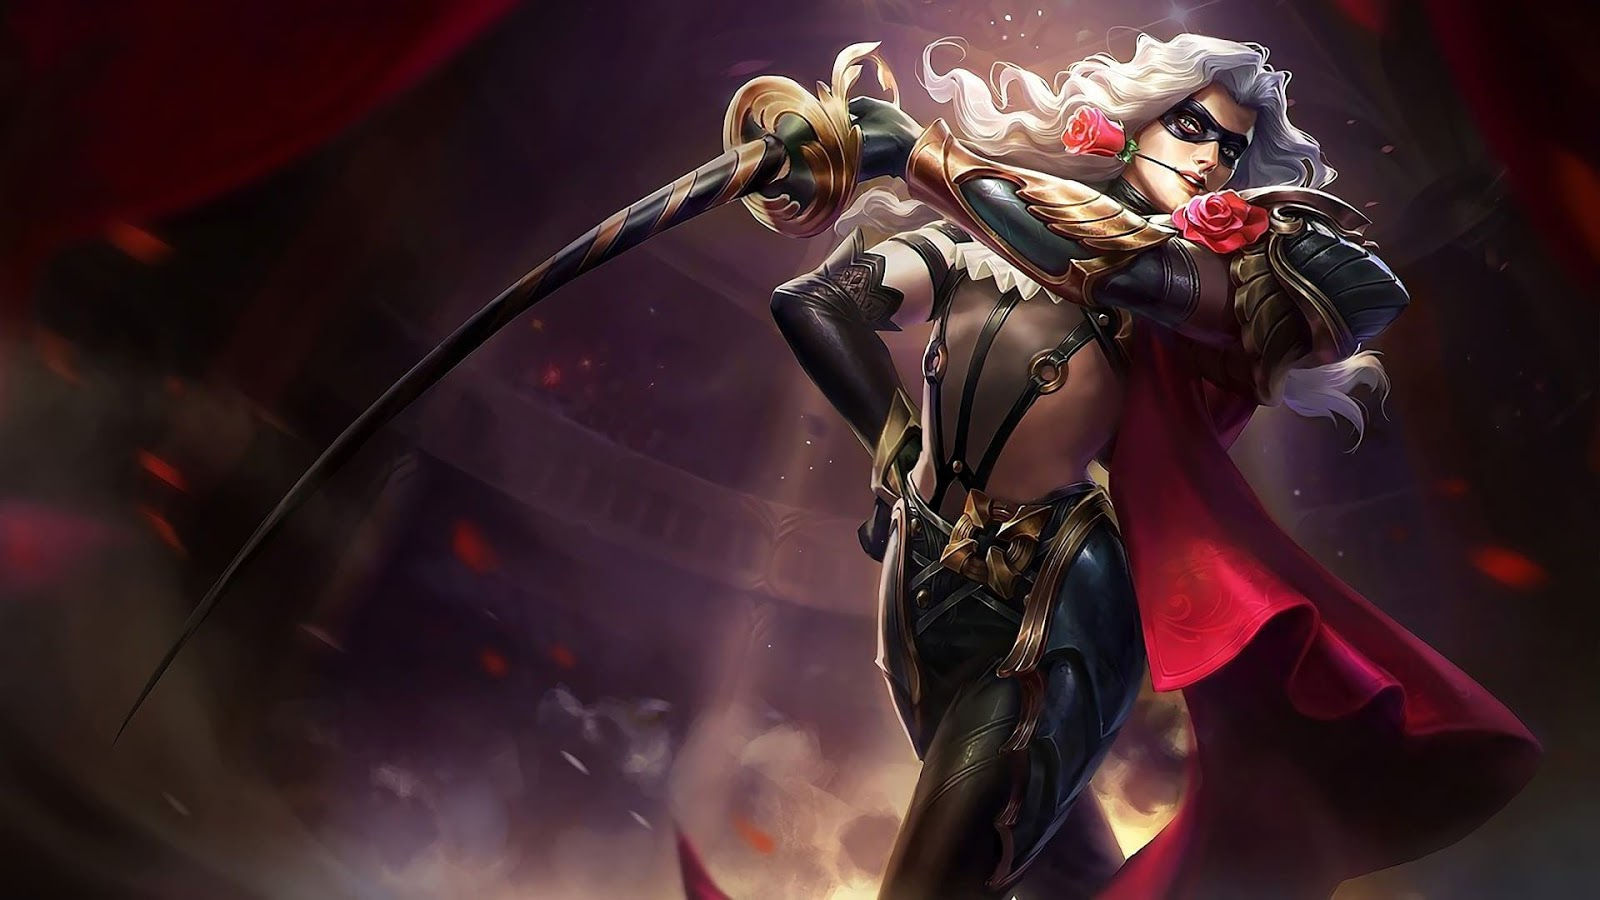 Wallpaper Lancelot Masked Knight Skin Mobile Legends HD for PC